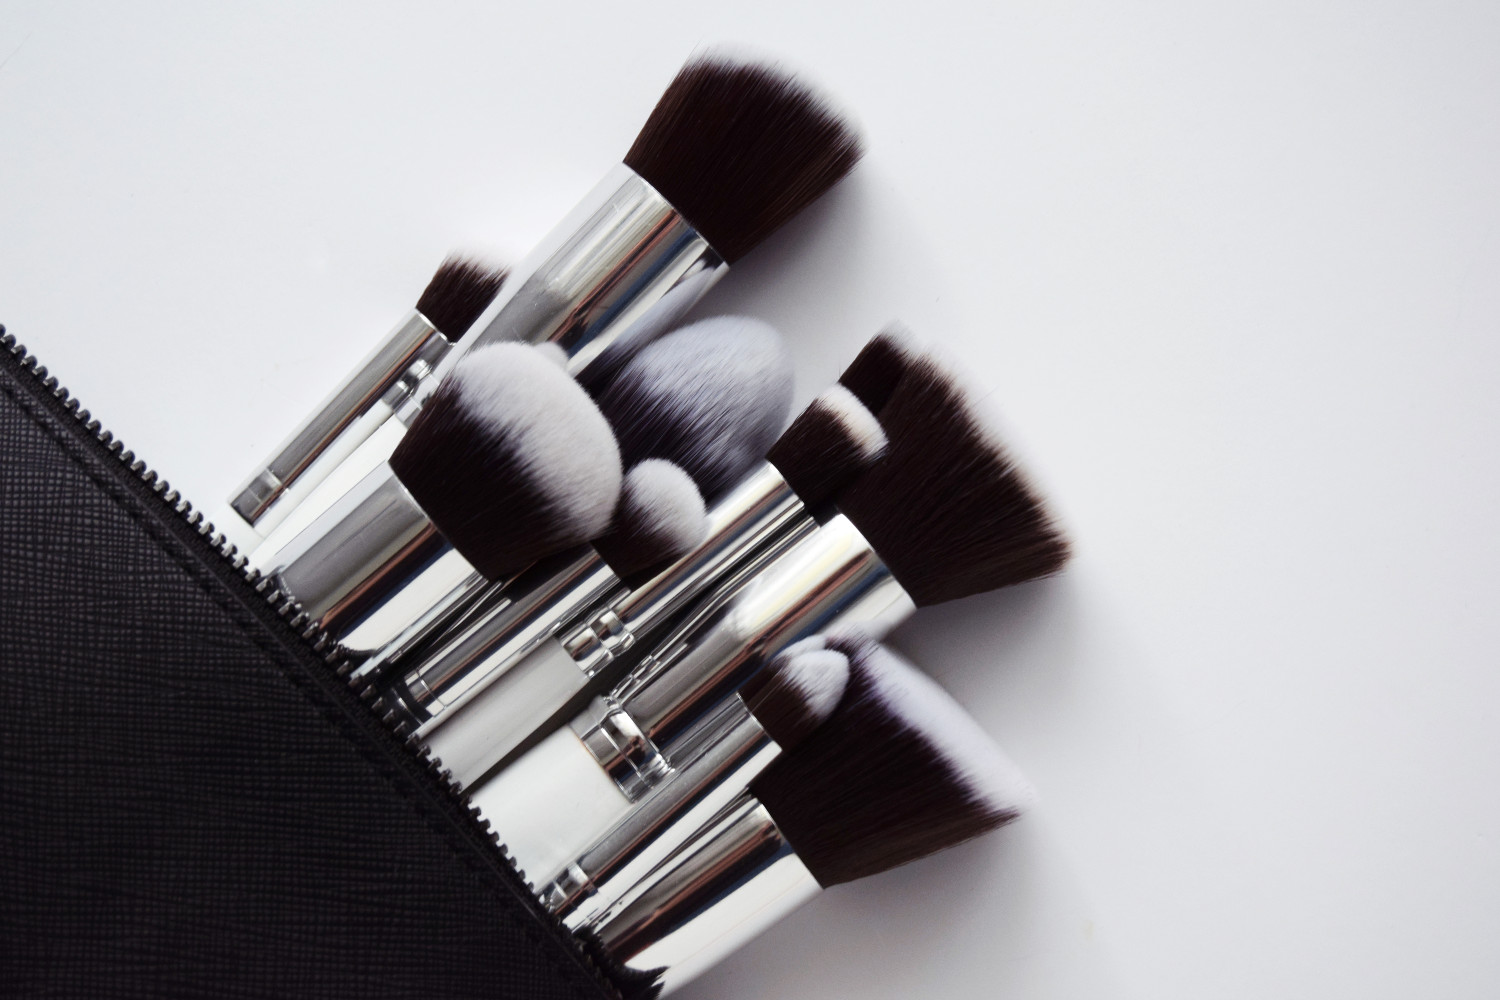 jessup_brushes_review_new_in_zalabell_blog_makeup_beauty_8